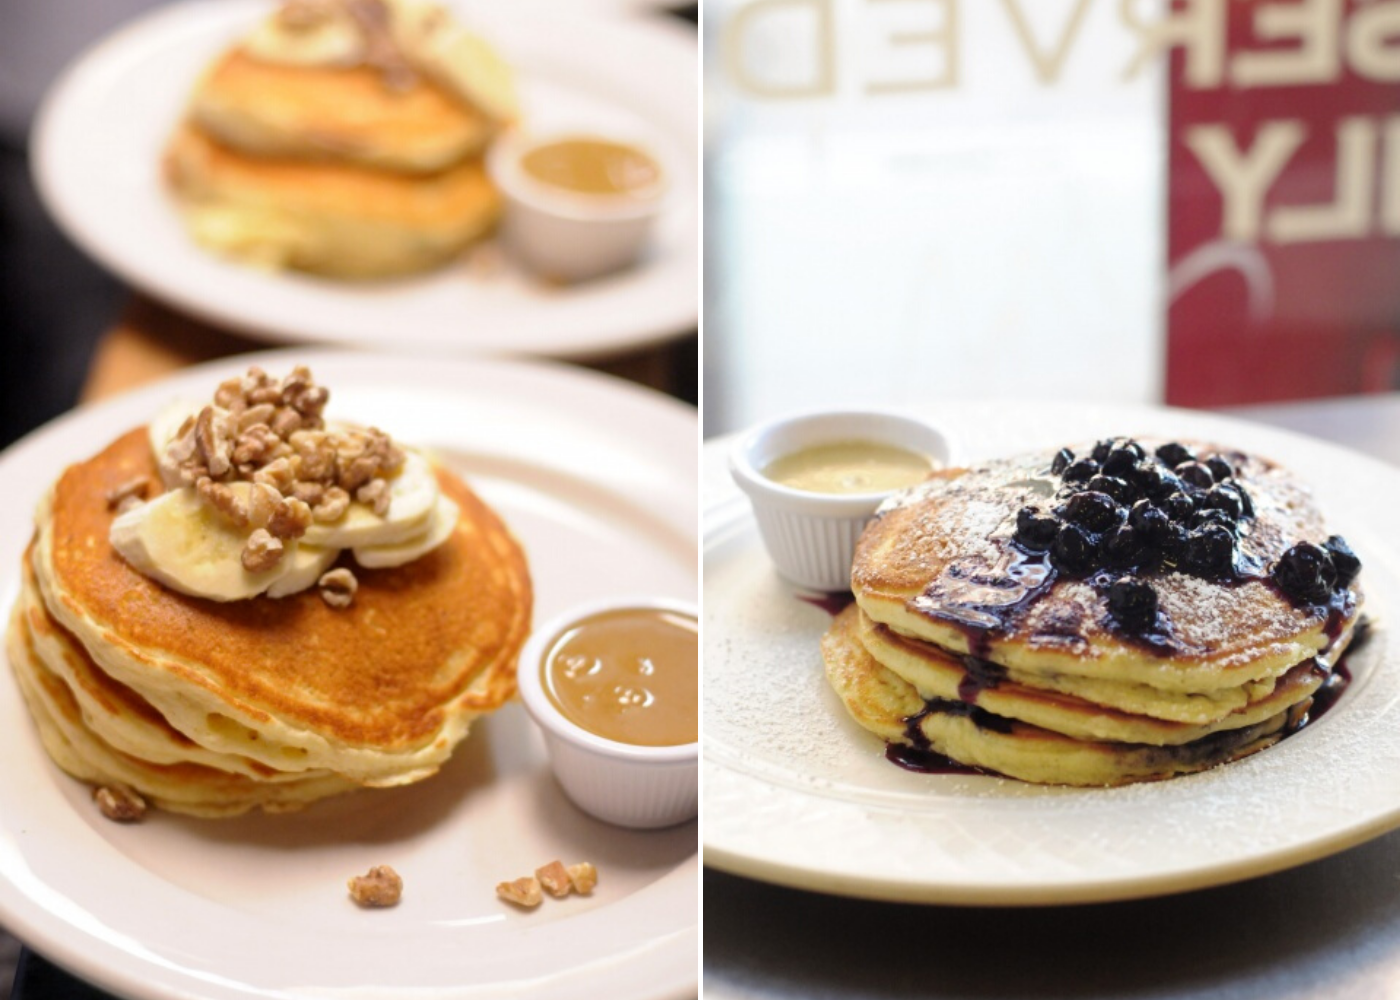 Clinton Street Baking Company & Restaurant | sweet pancakes in singapore